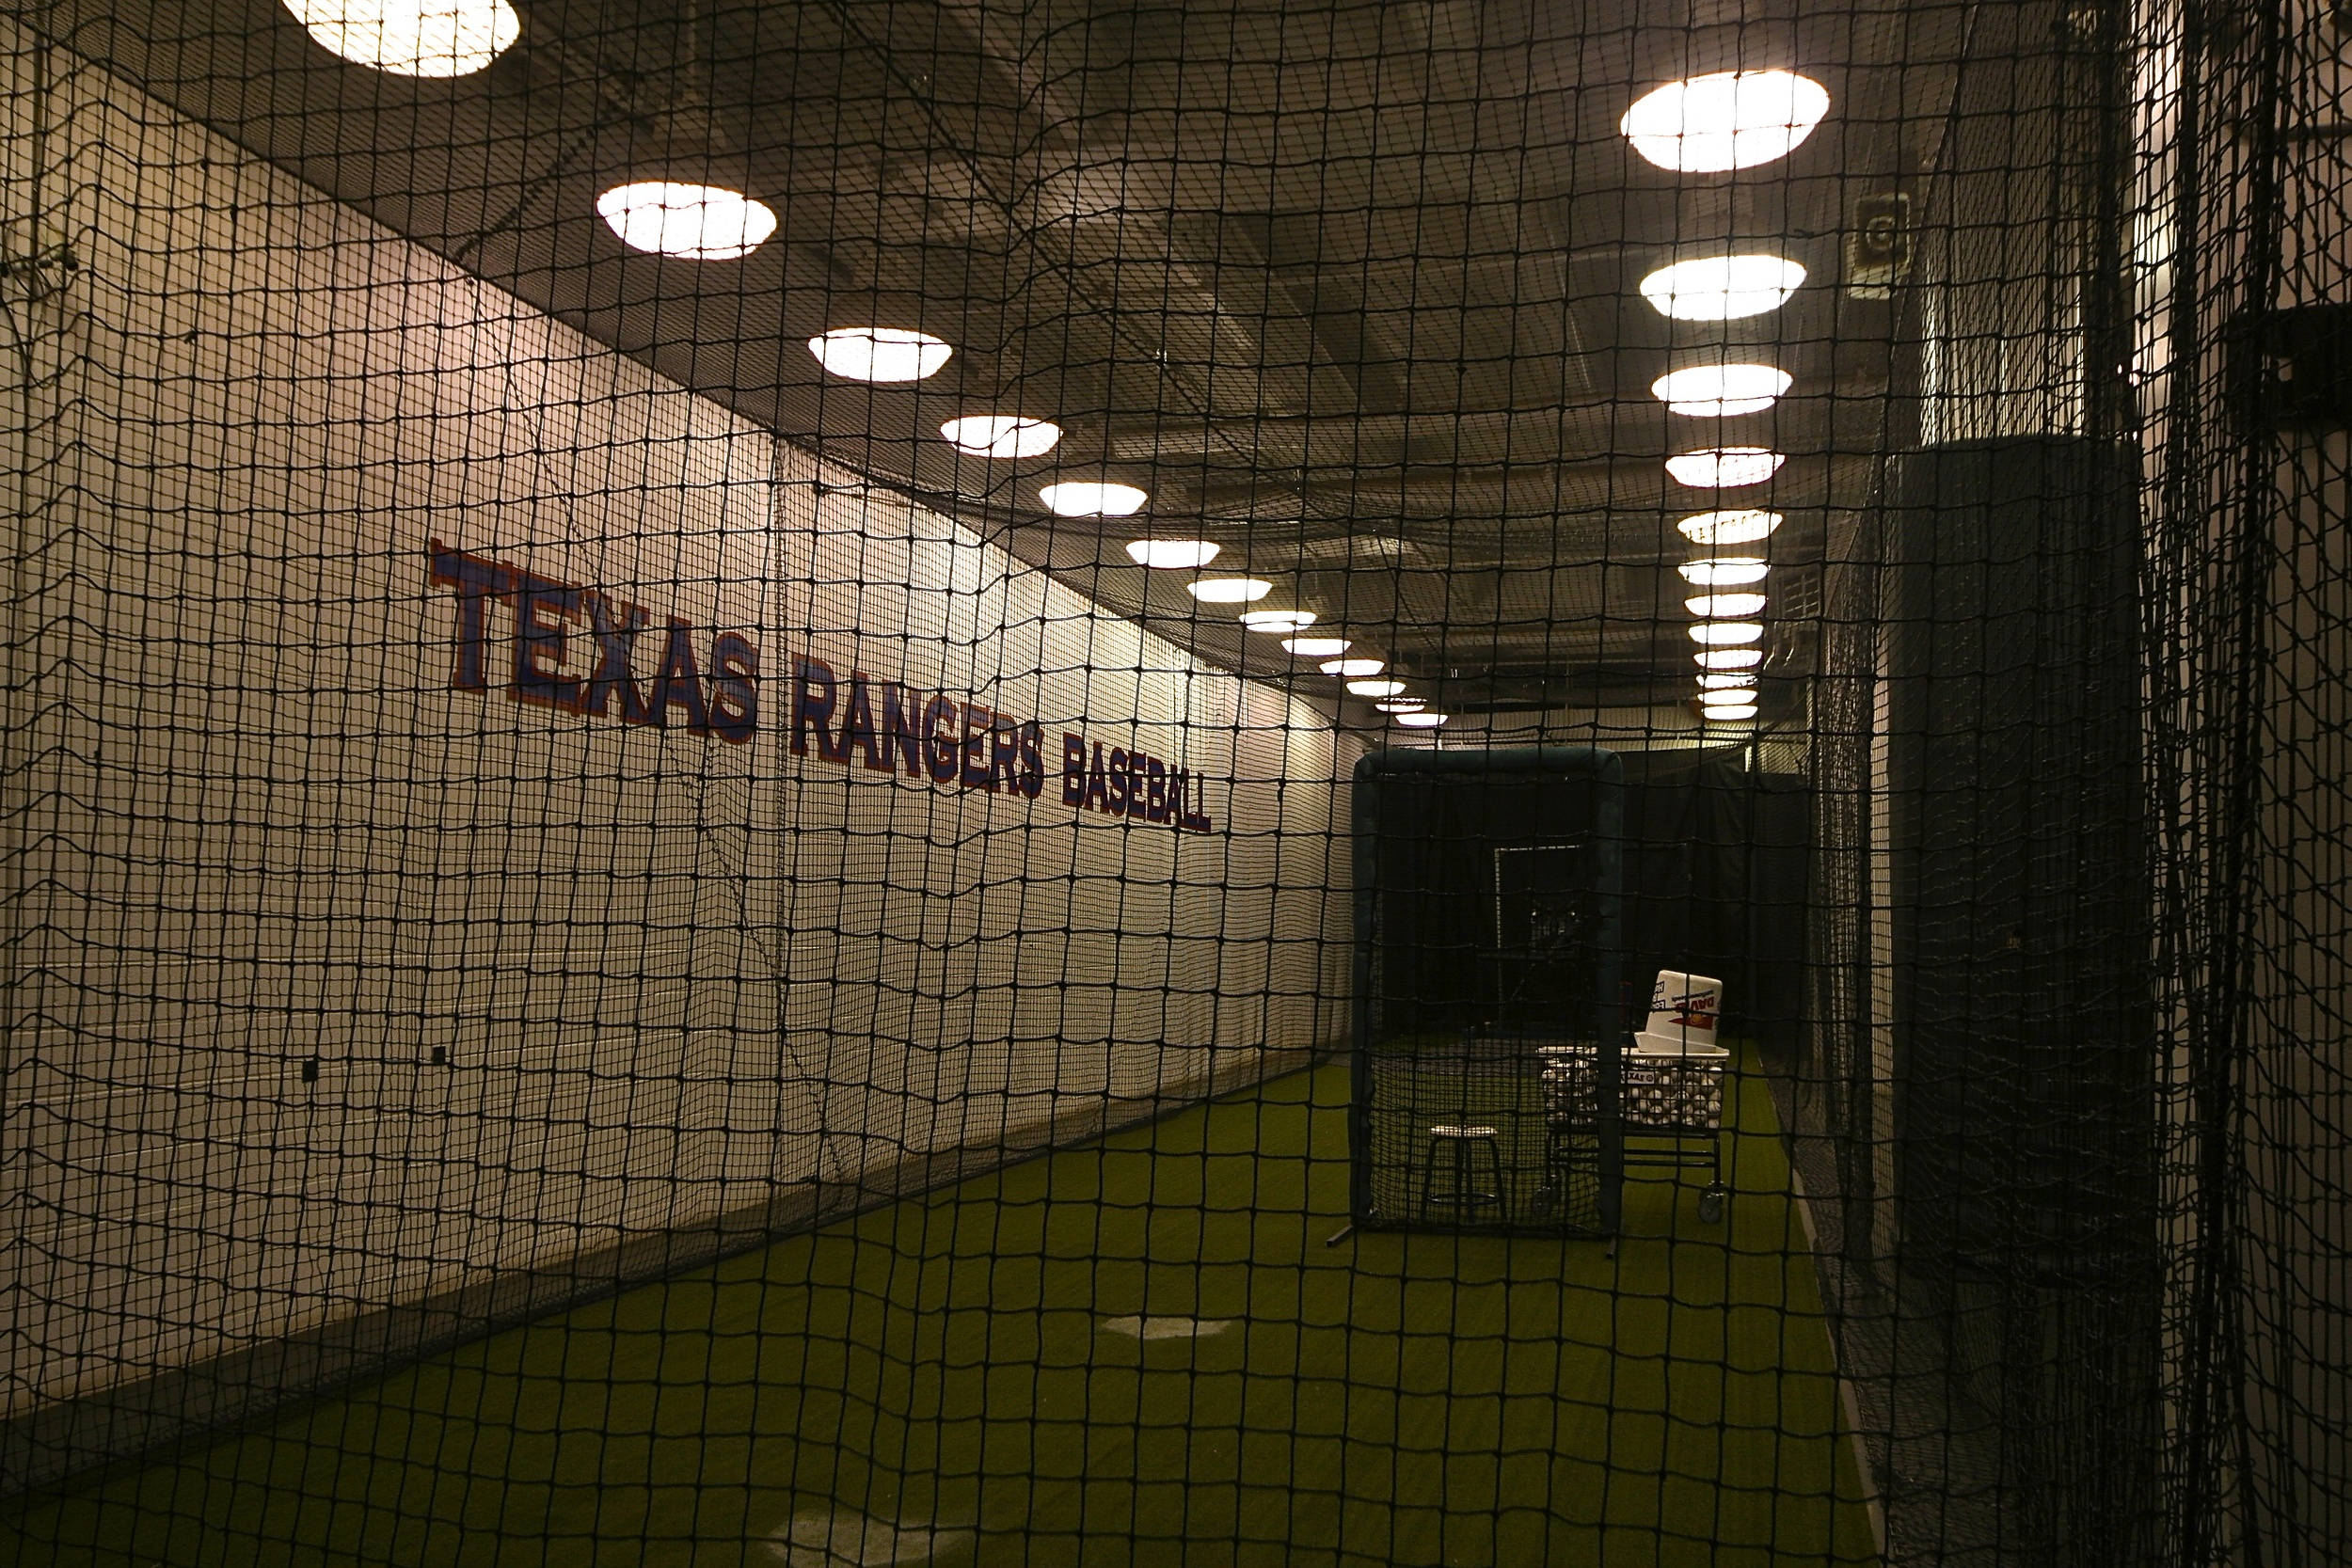 Rangers batting cages